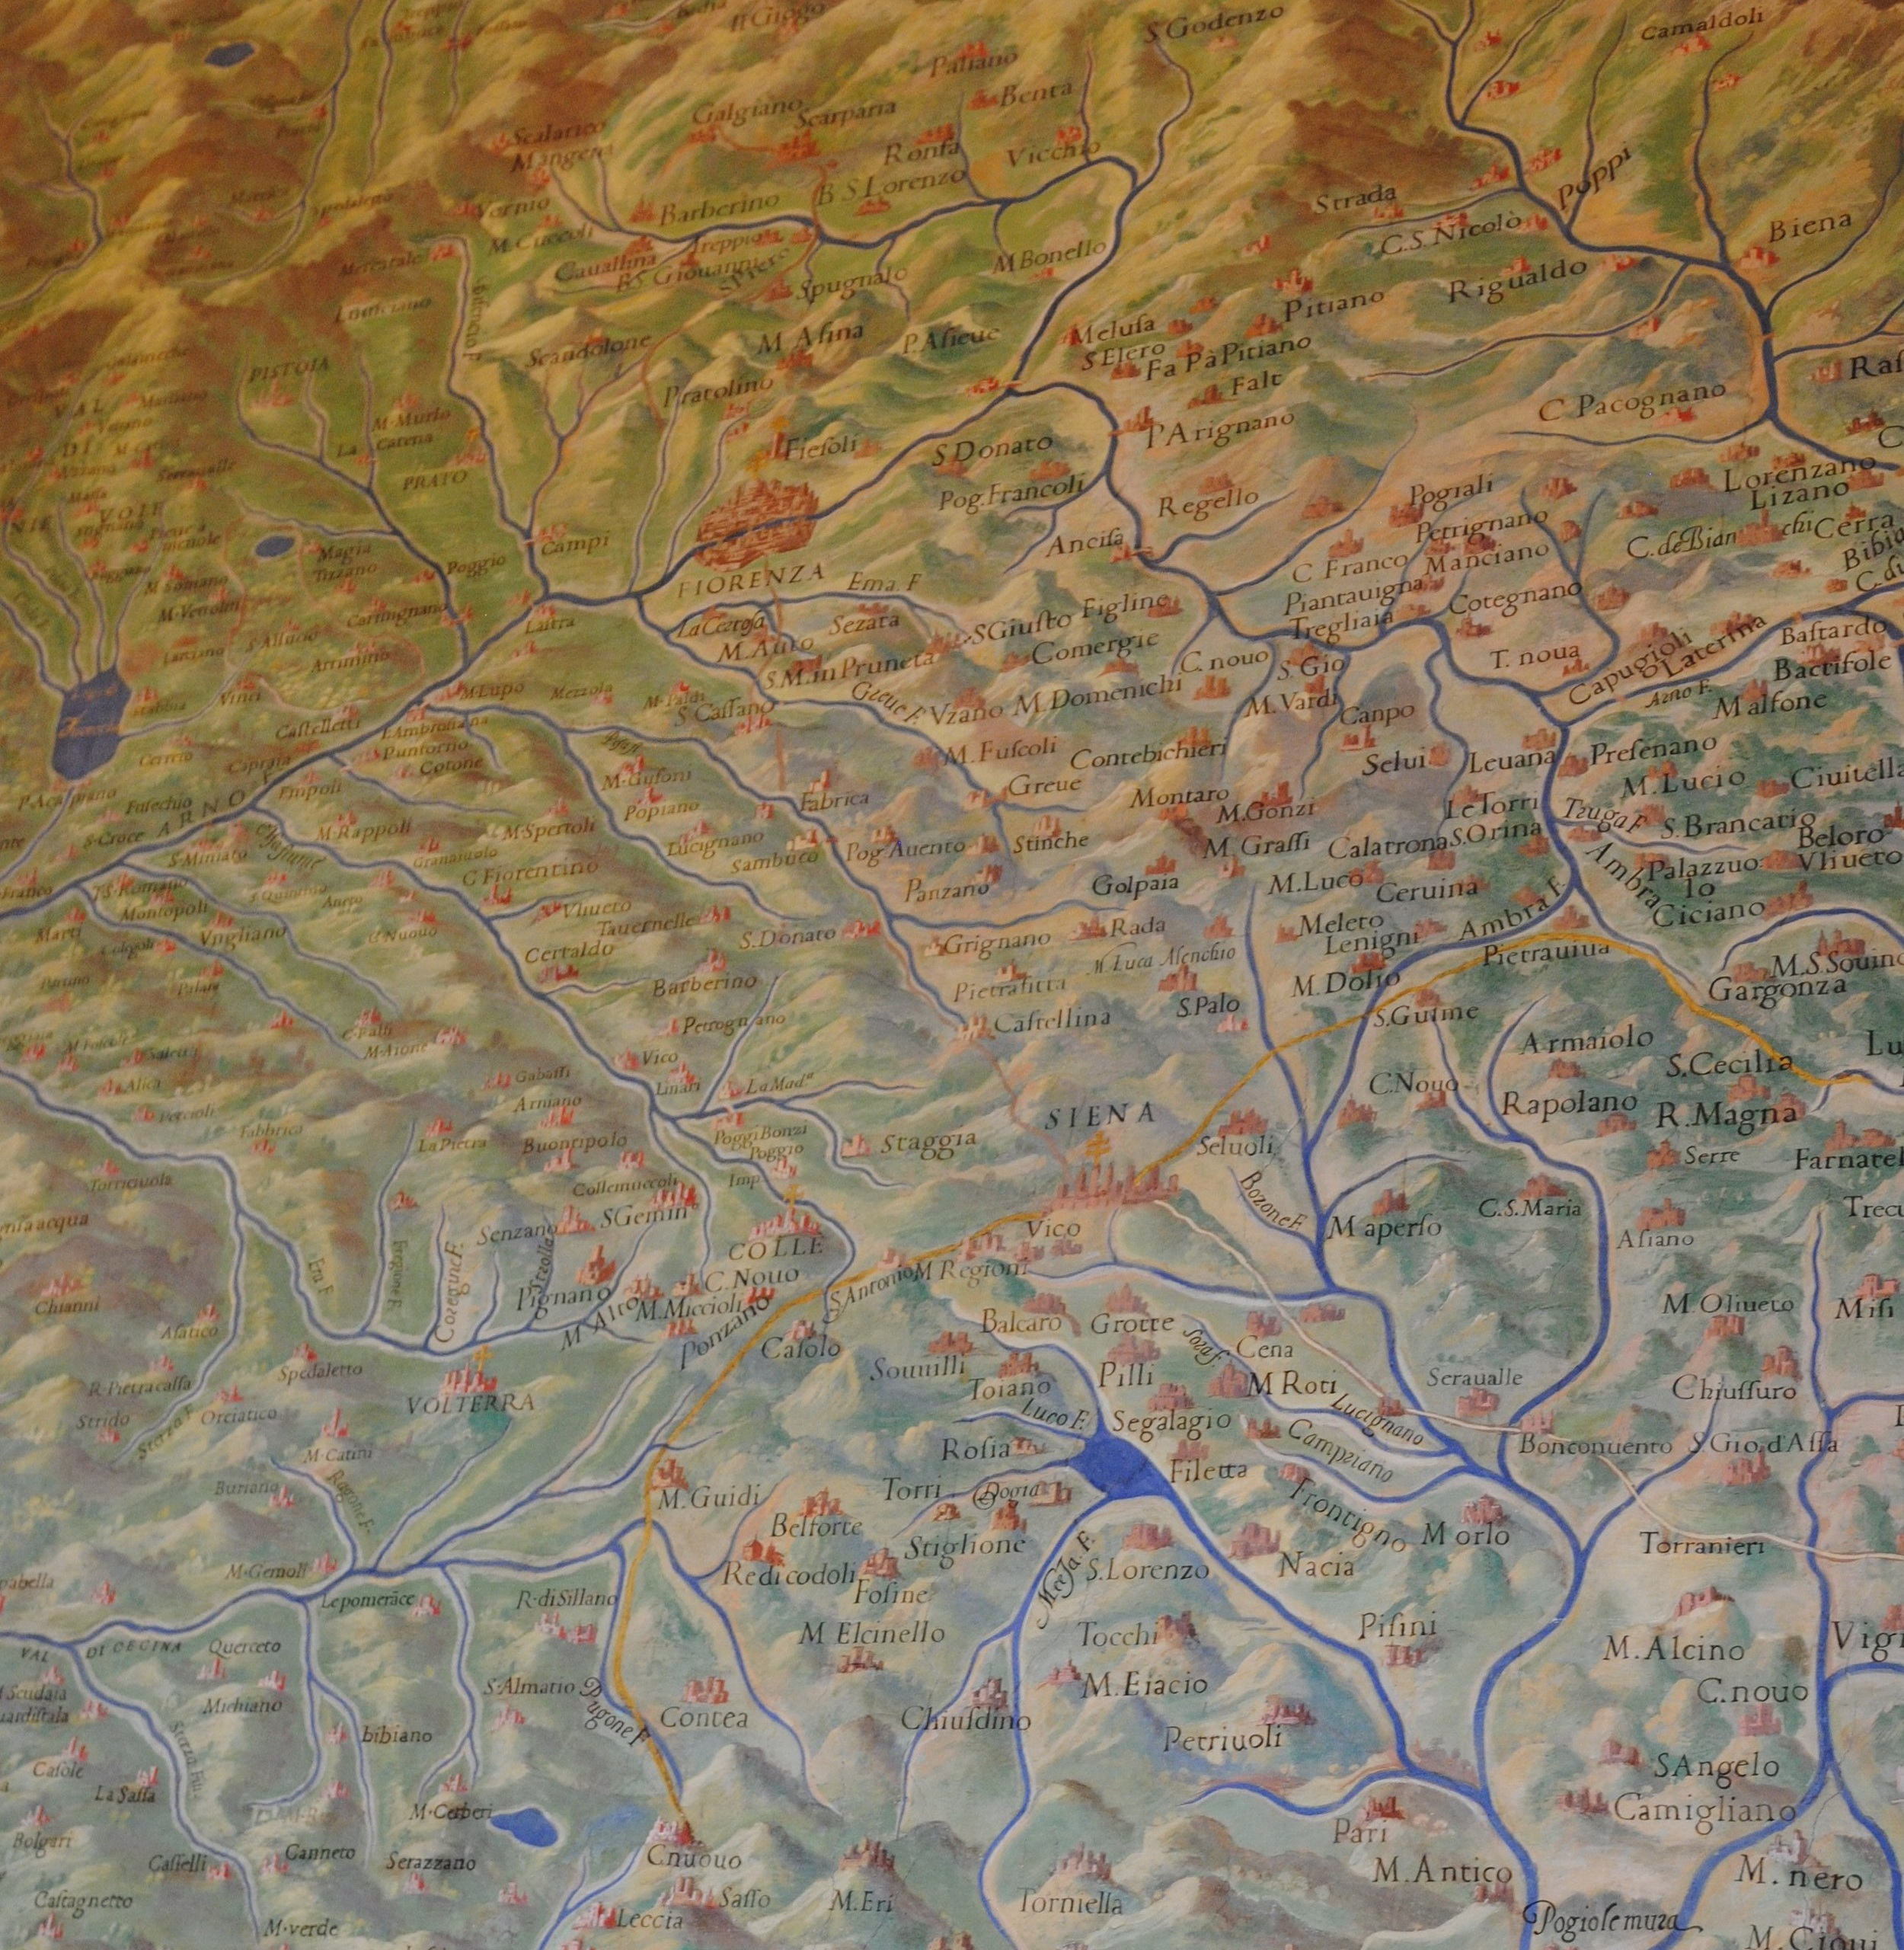 Gallery of Maps Closeup, each mountain is documented in the area surrounding Siena